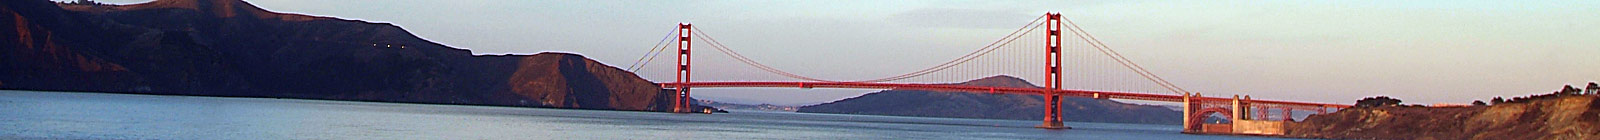 Golden Gate Bridge - Banner